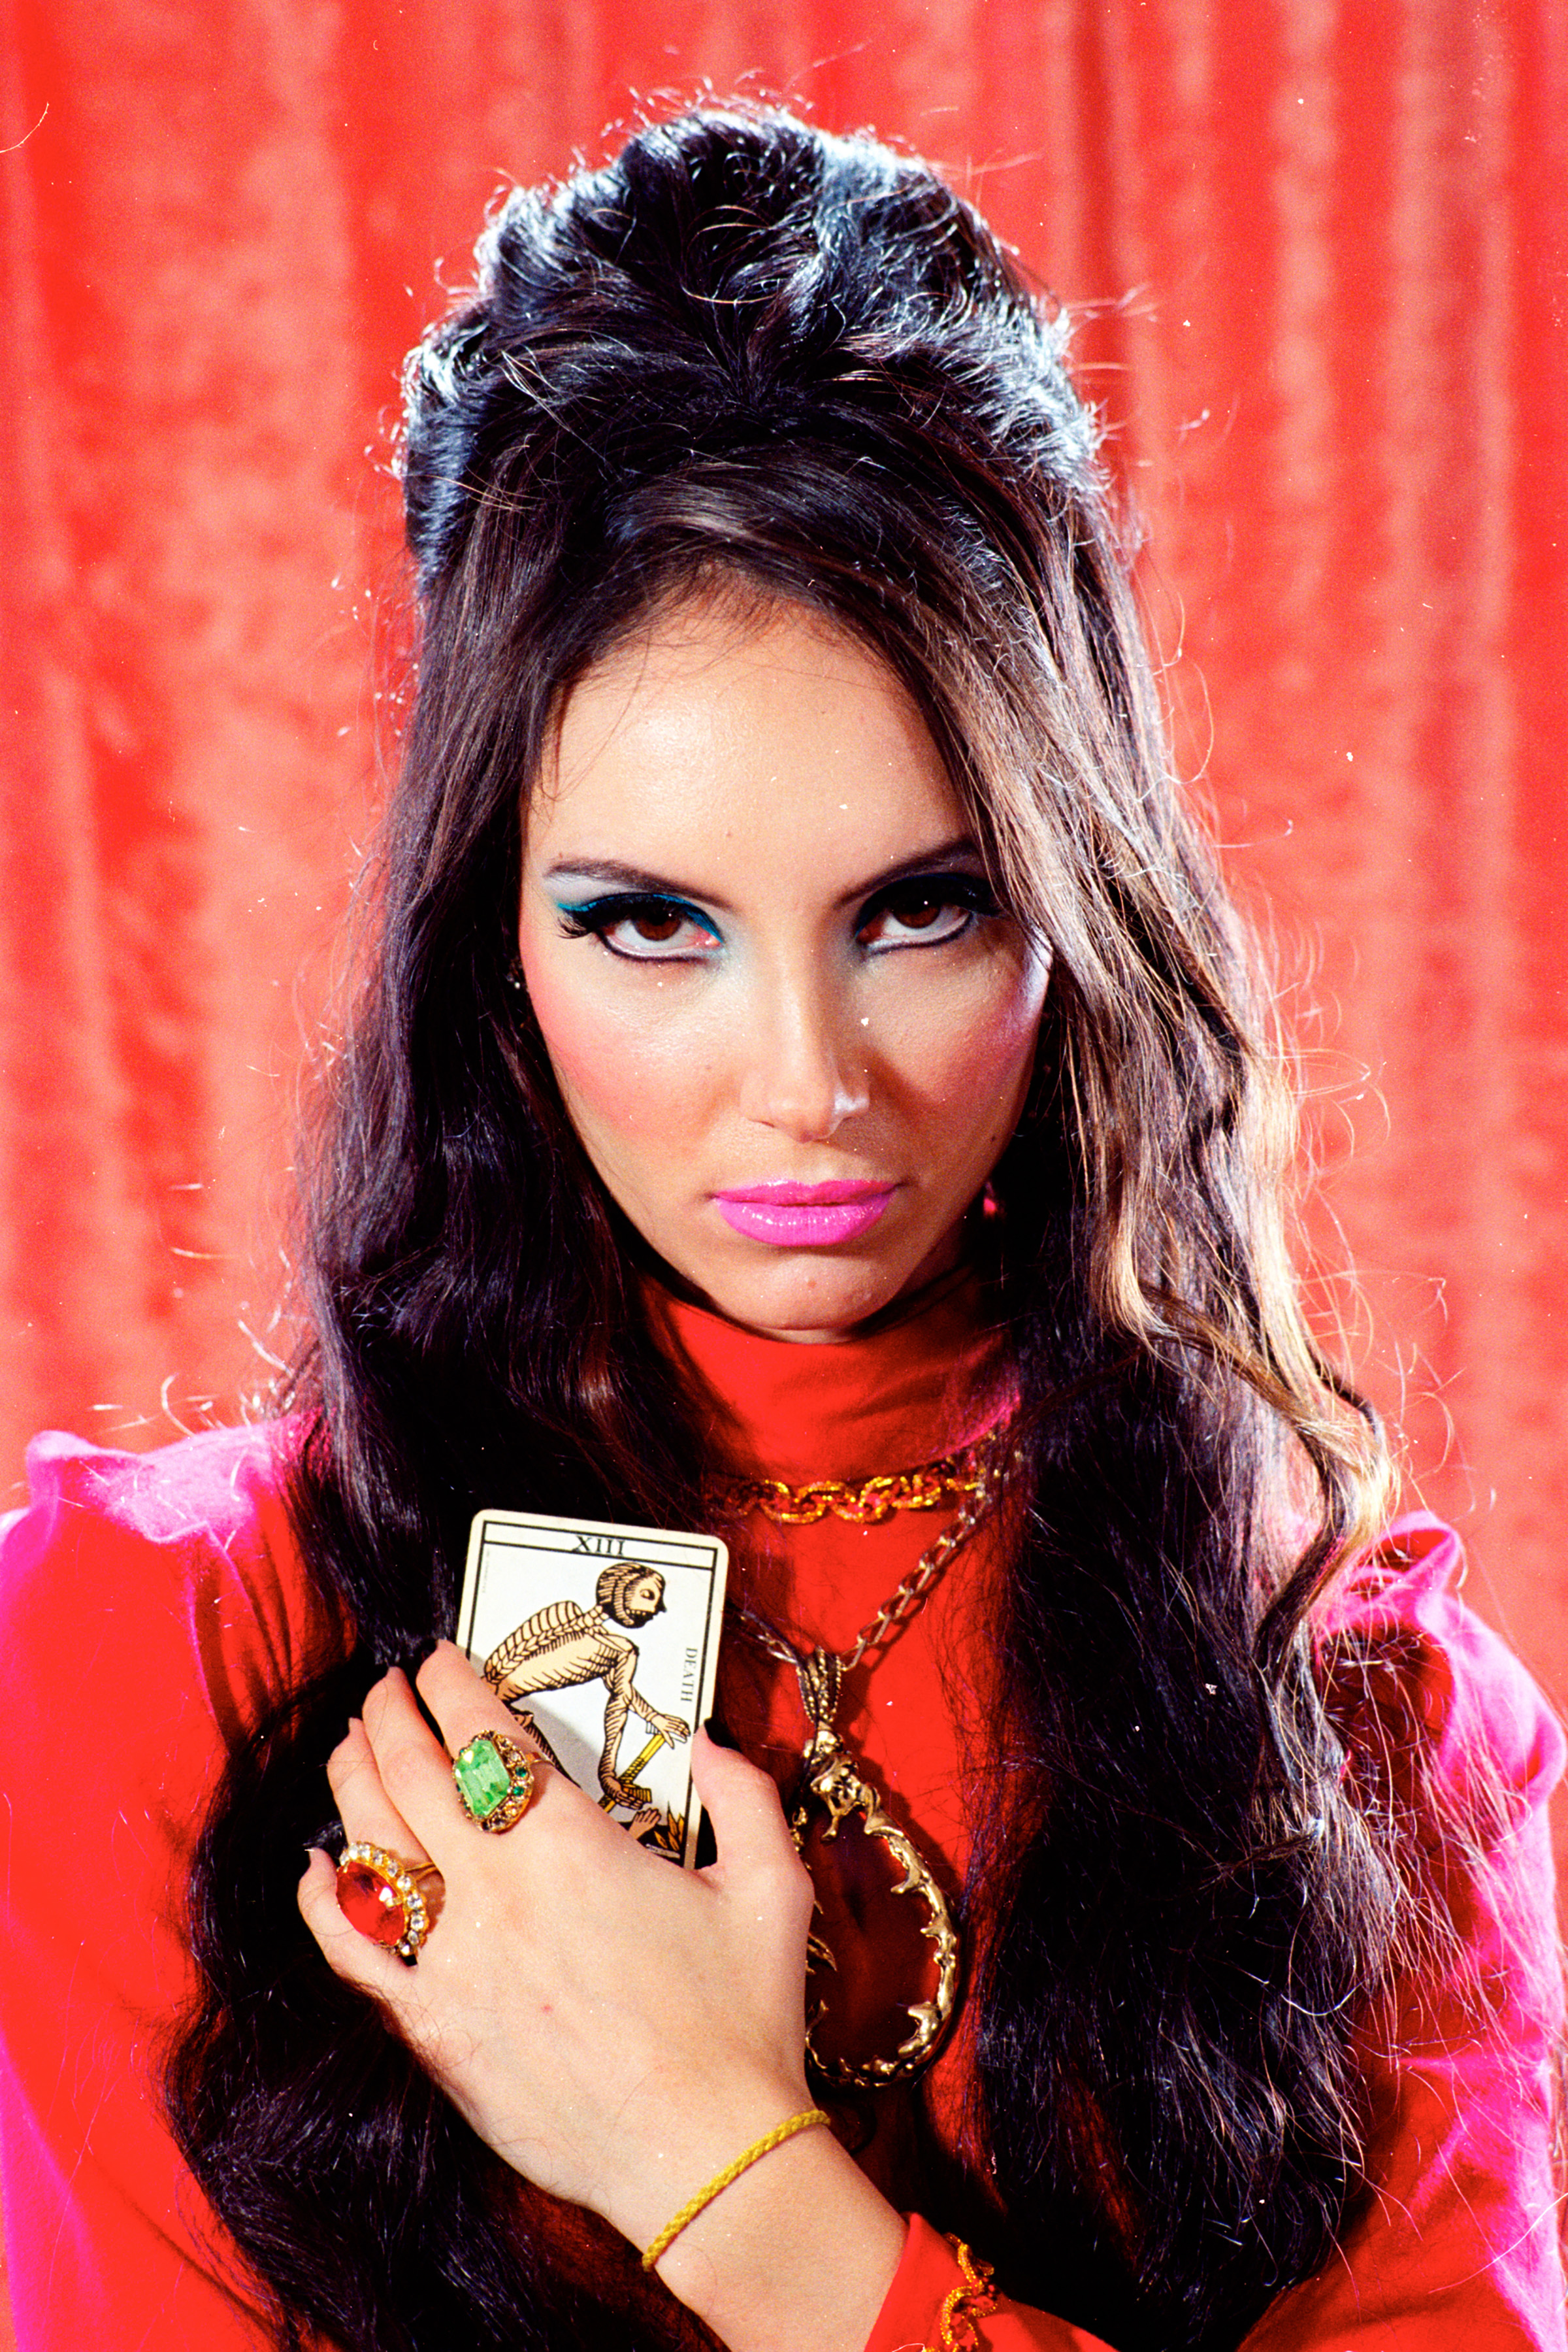 the-love-witch-x-parker-day-web-size1.jpg